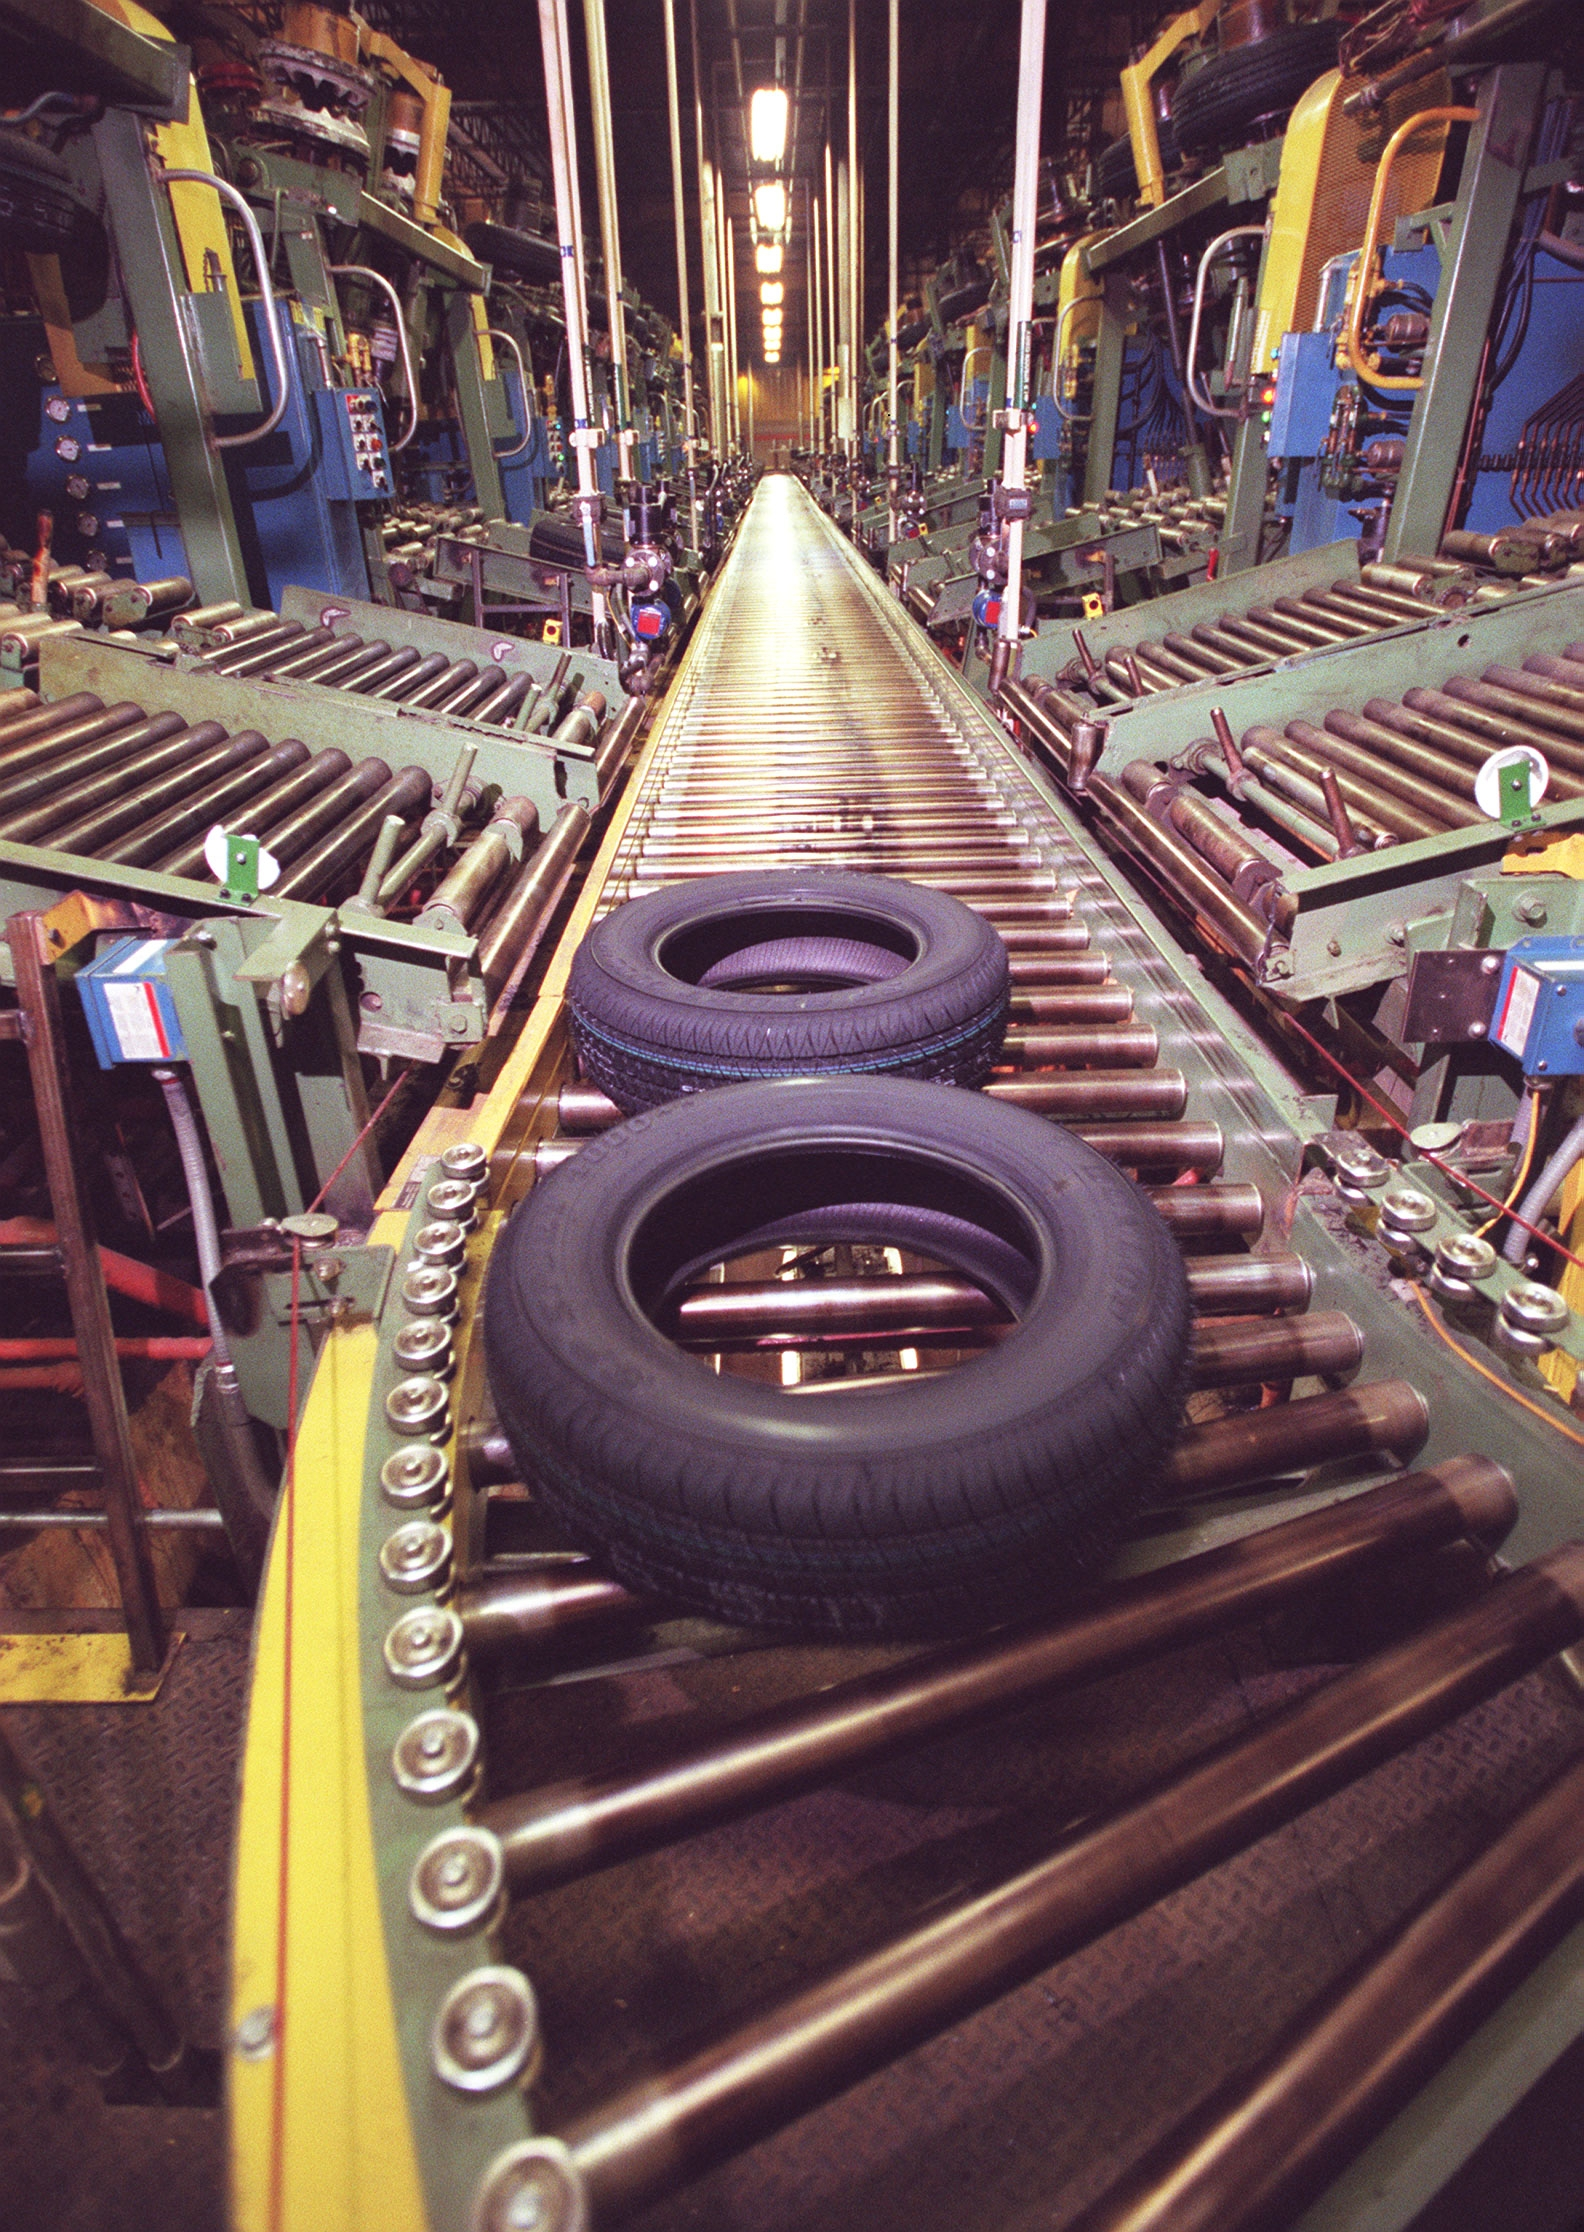 BY WIPPERT   5/17/00  TIRES NEAR THE END OF THEIR JOURNEY HEADING TOWARDS FINAL INSPECTION